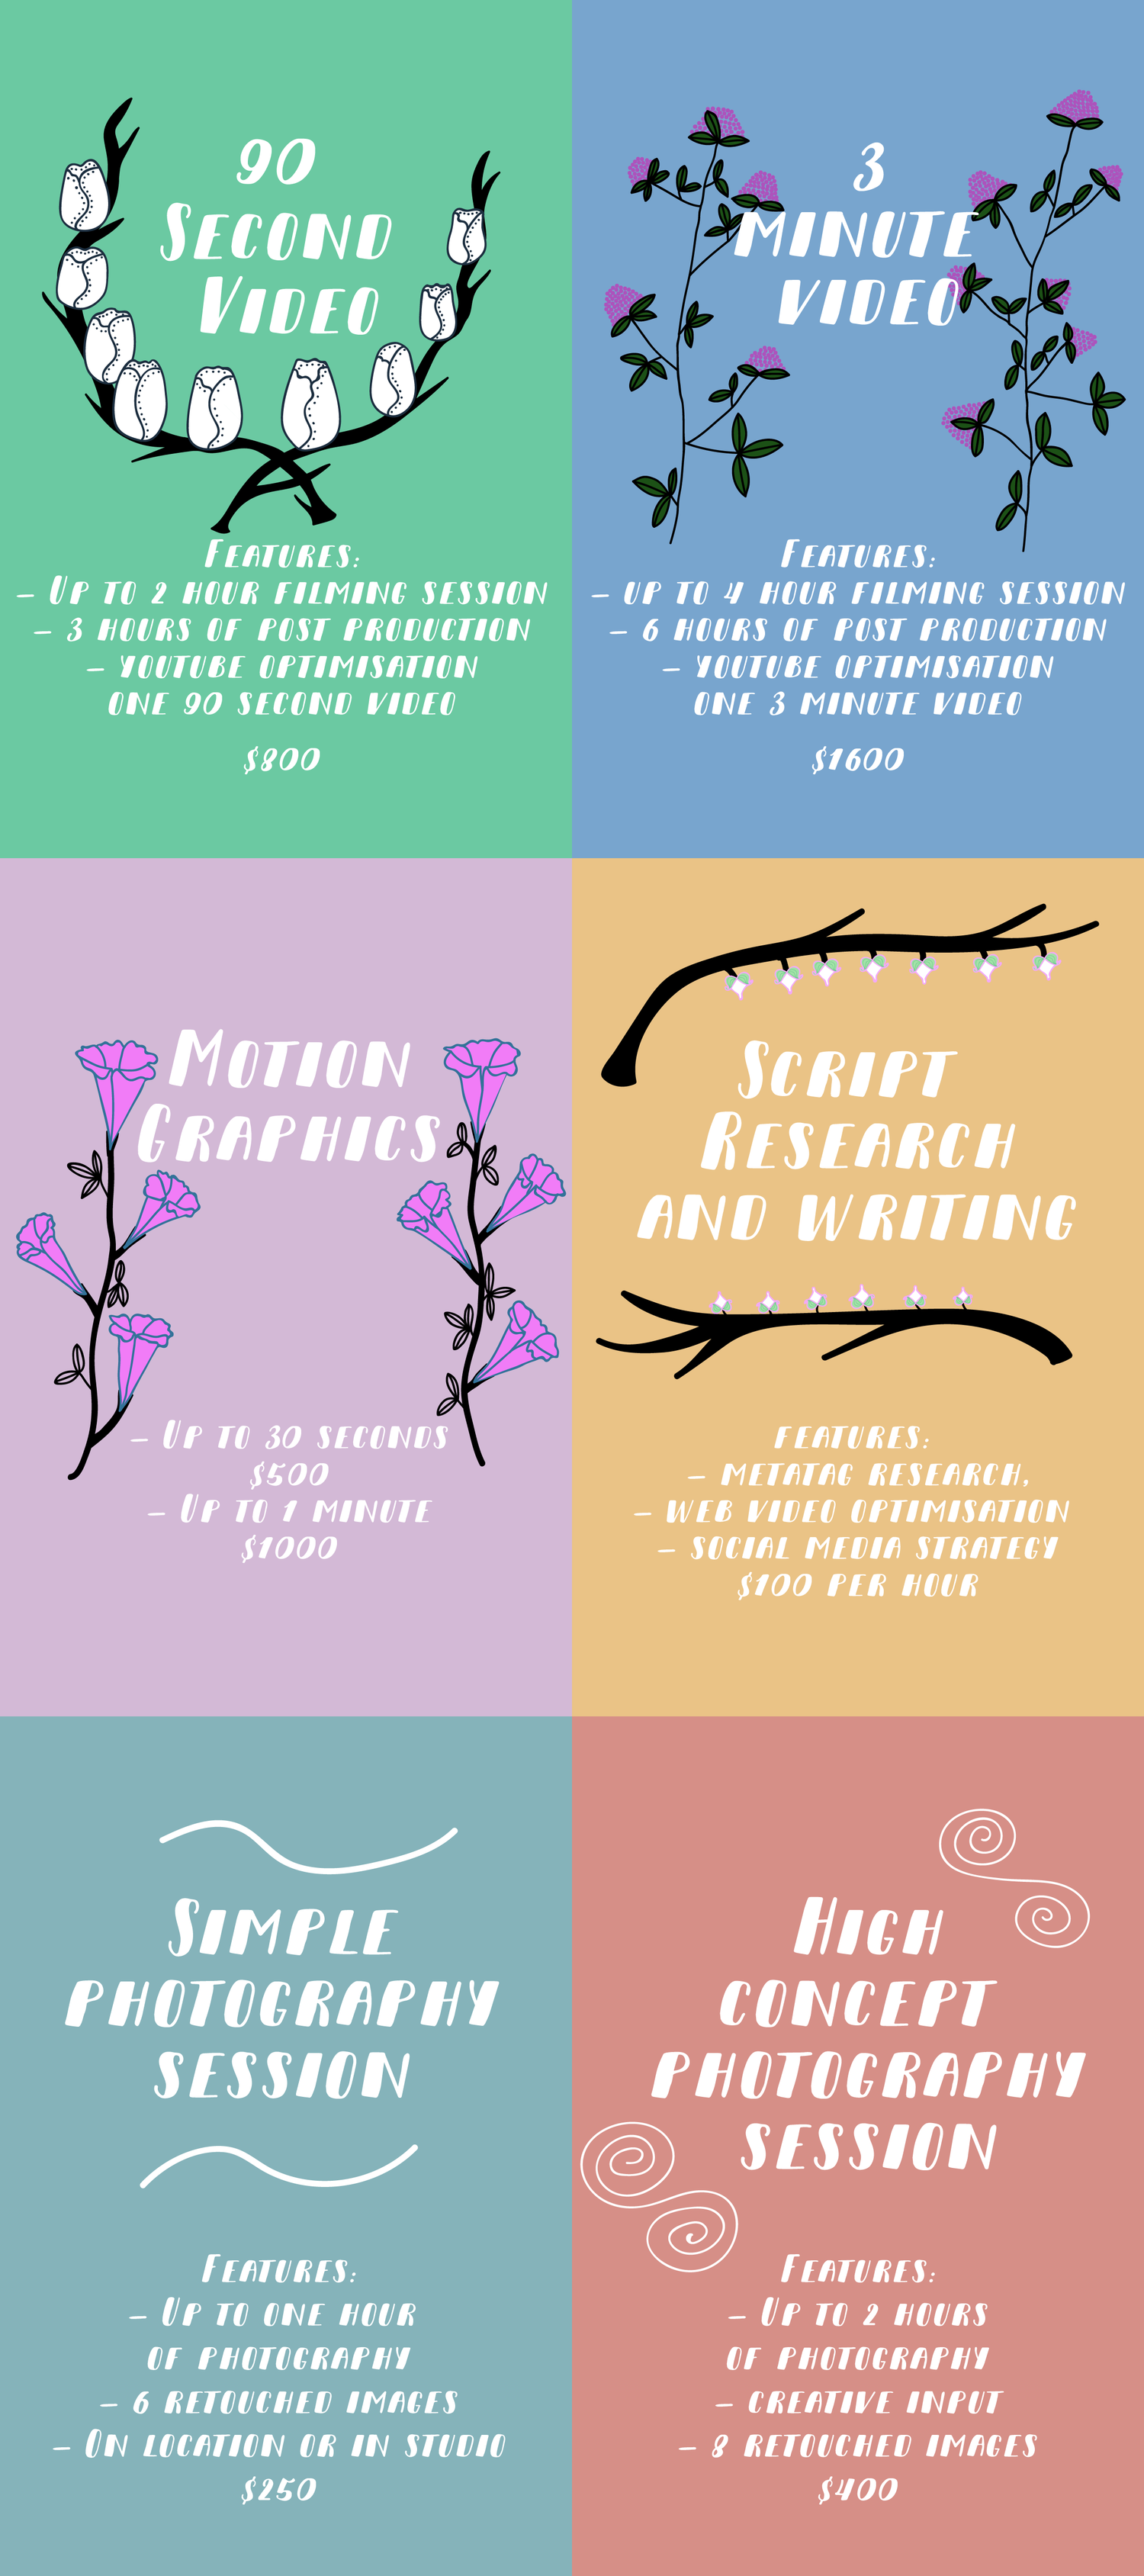 Services+sheet-01-01.png